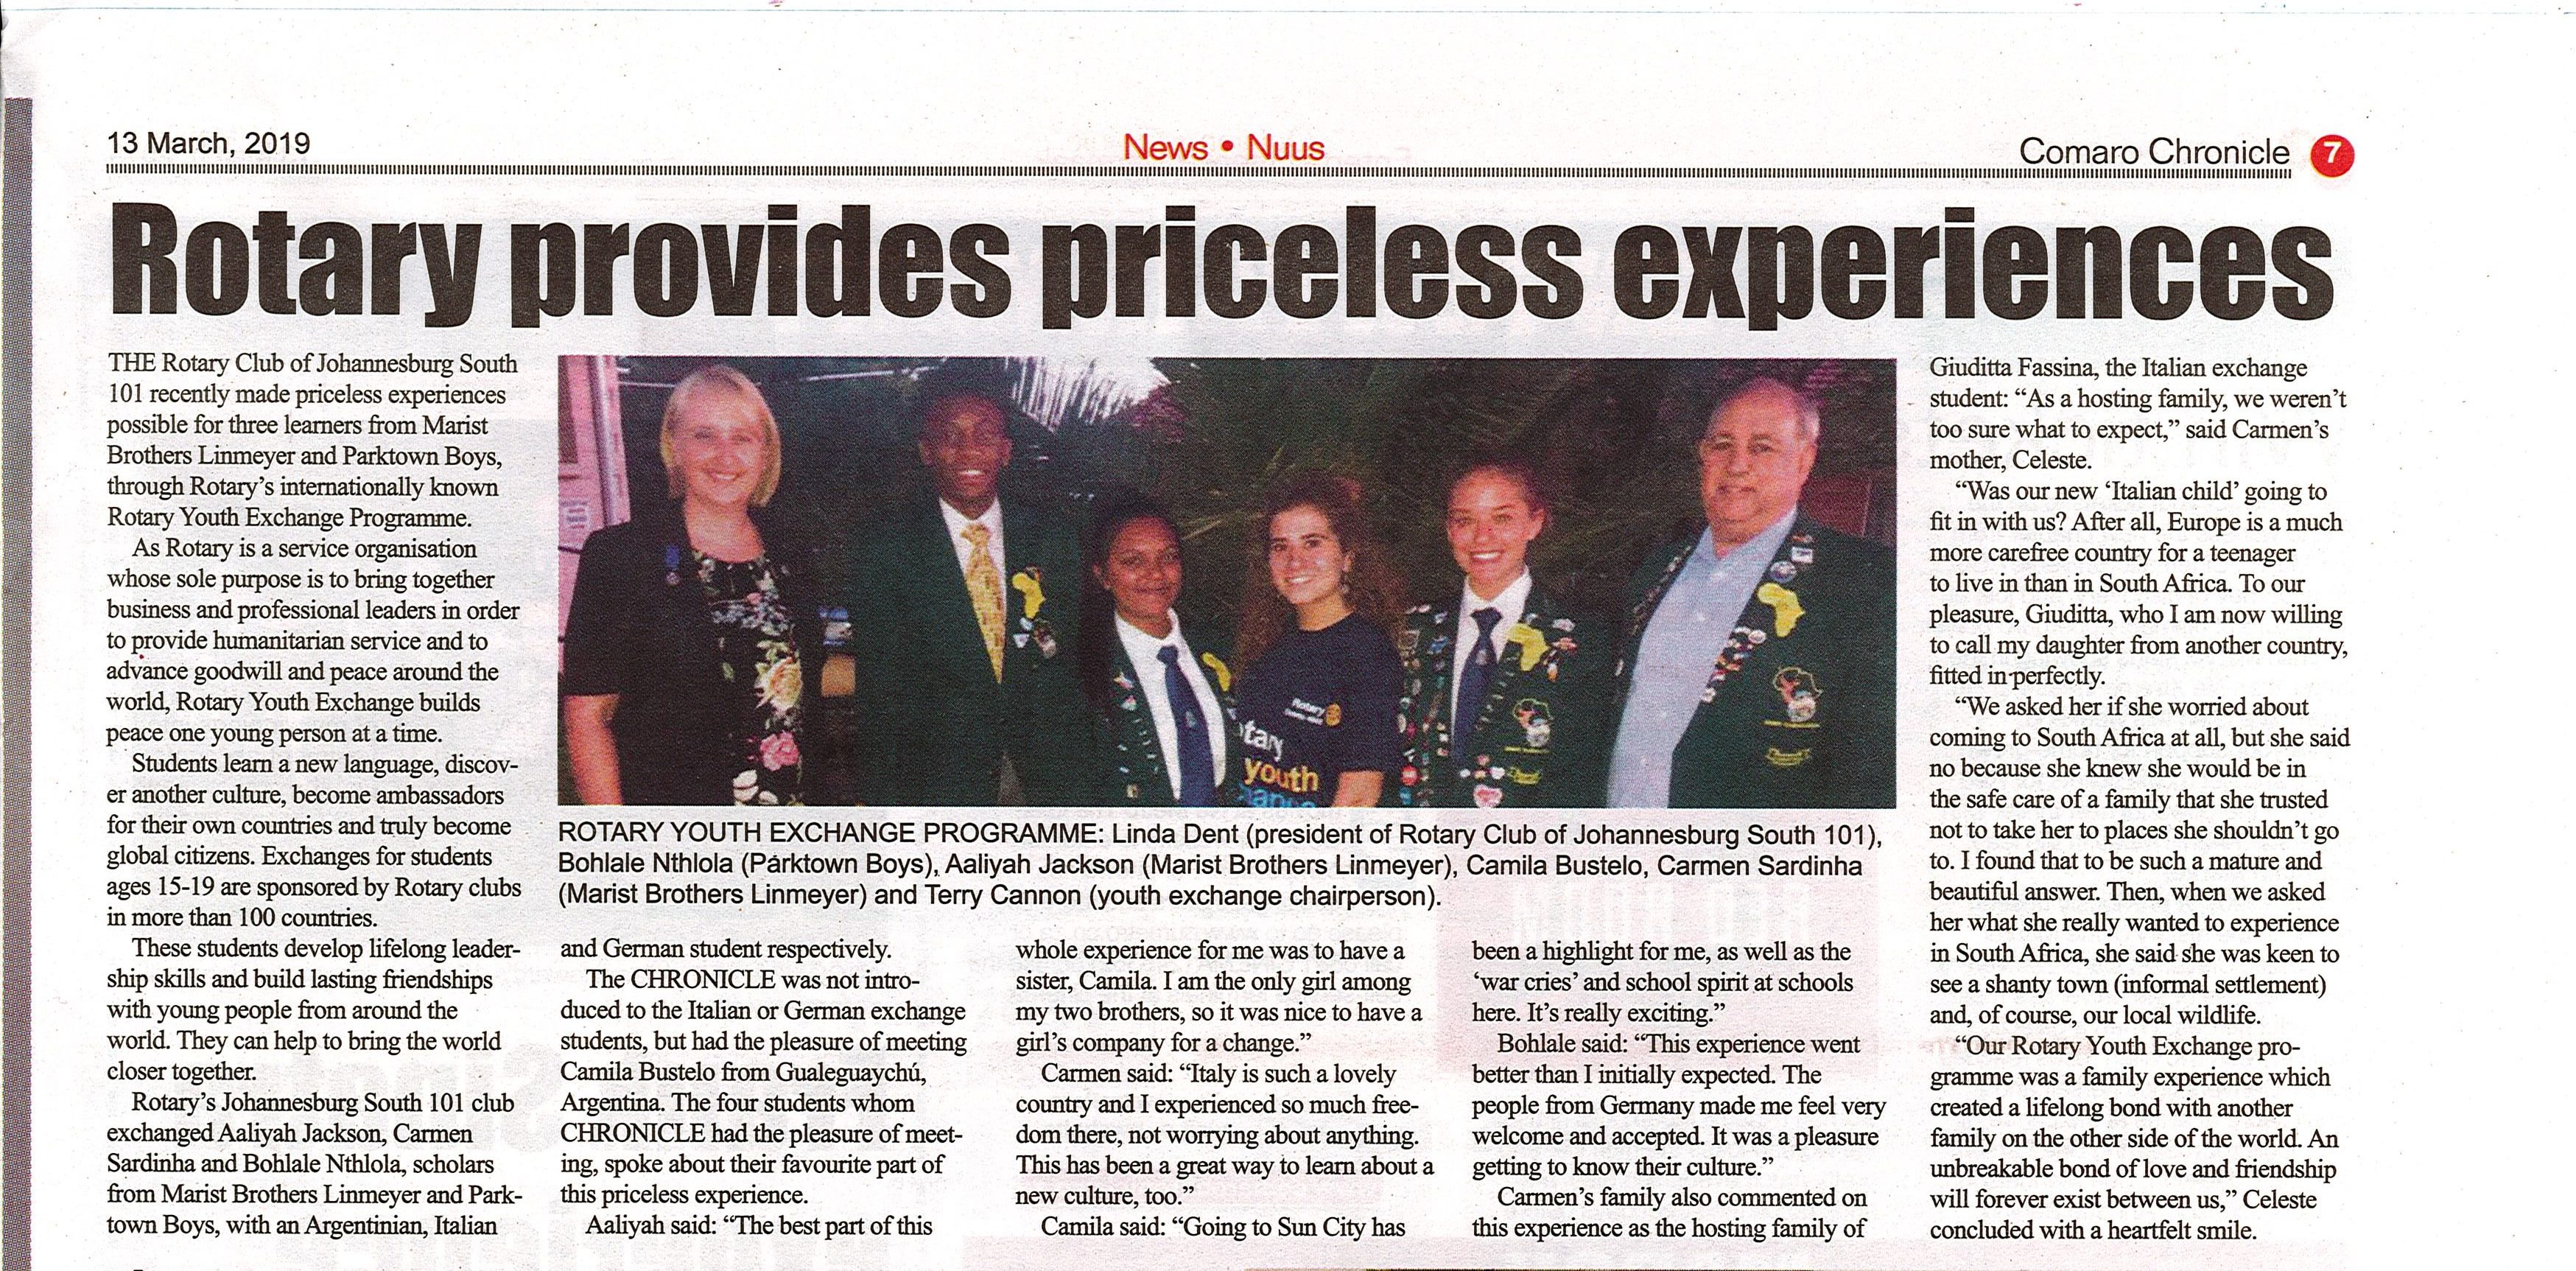 Comaro Chronicle - 13 March 2019 - Rotary Youth Exchange students